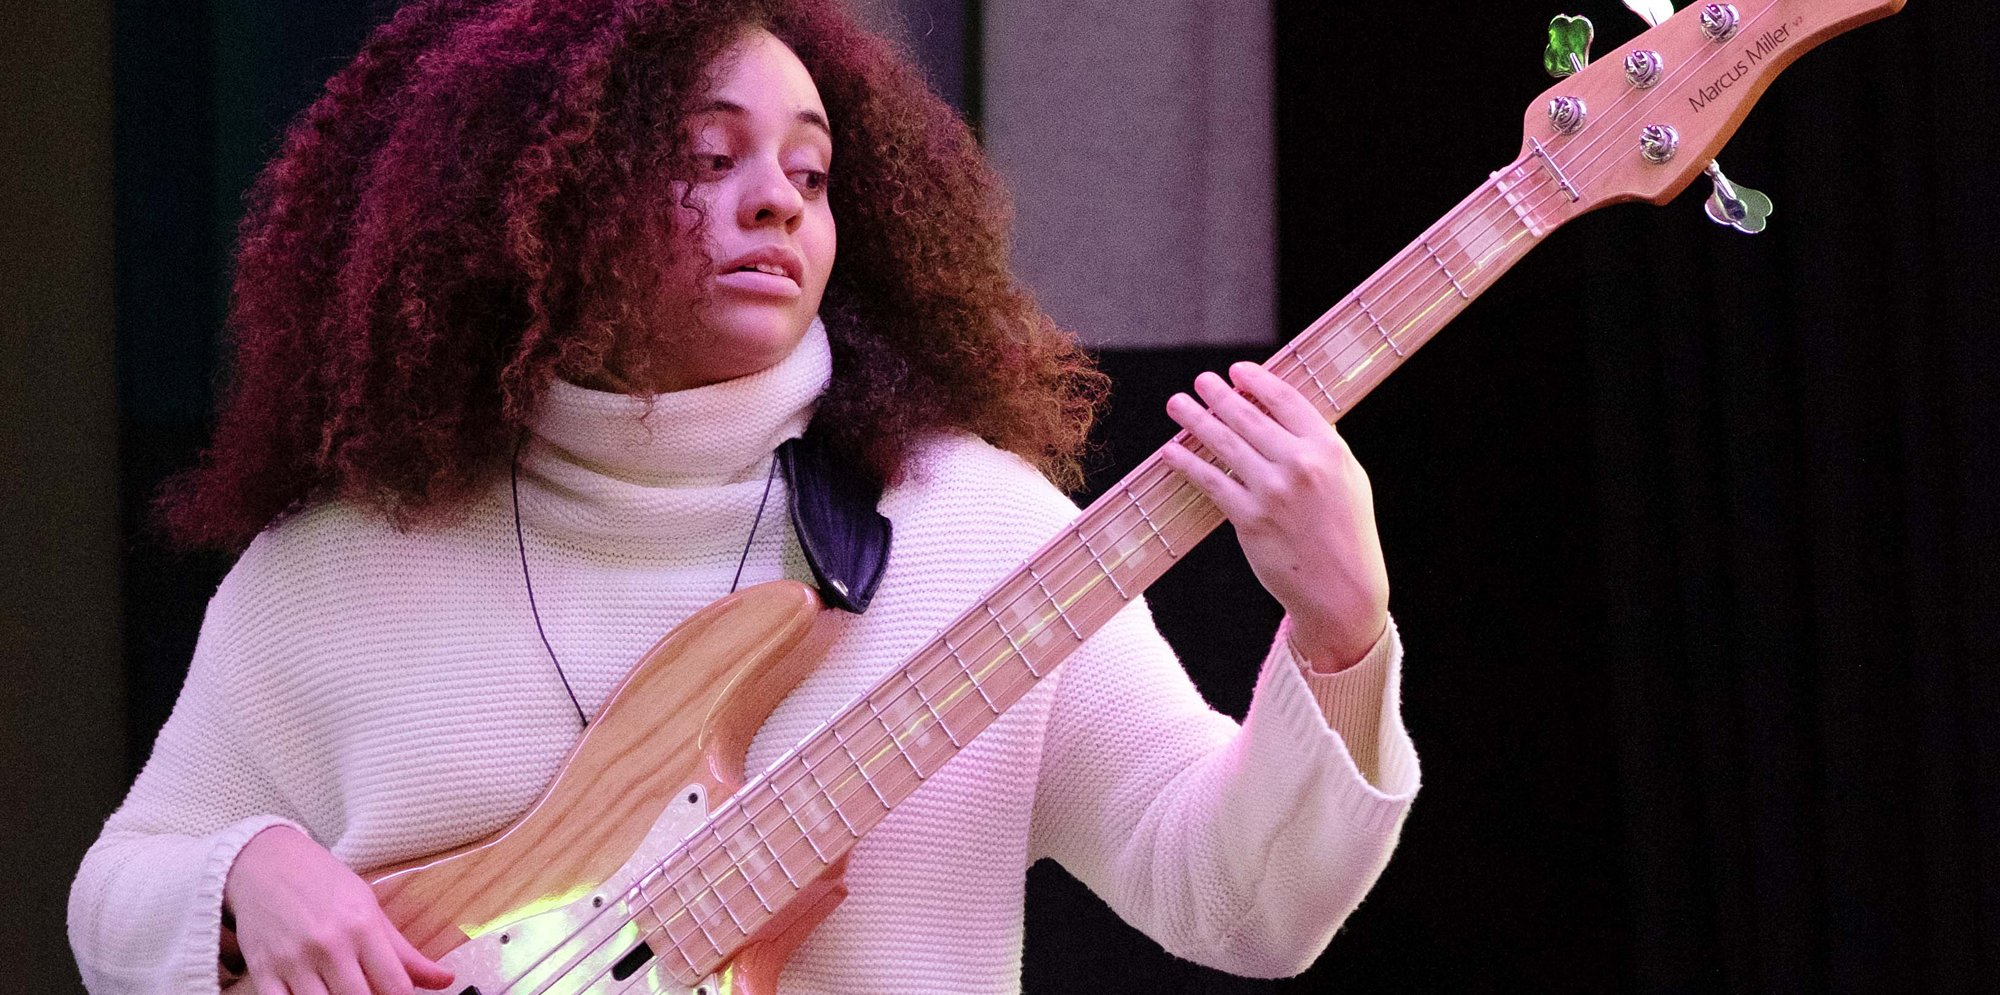 A woman in a beige sweater is playing the bass guitar.